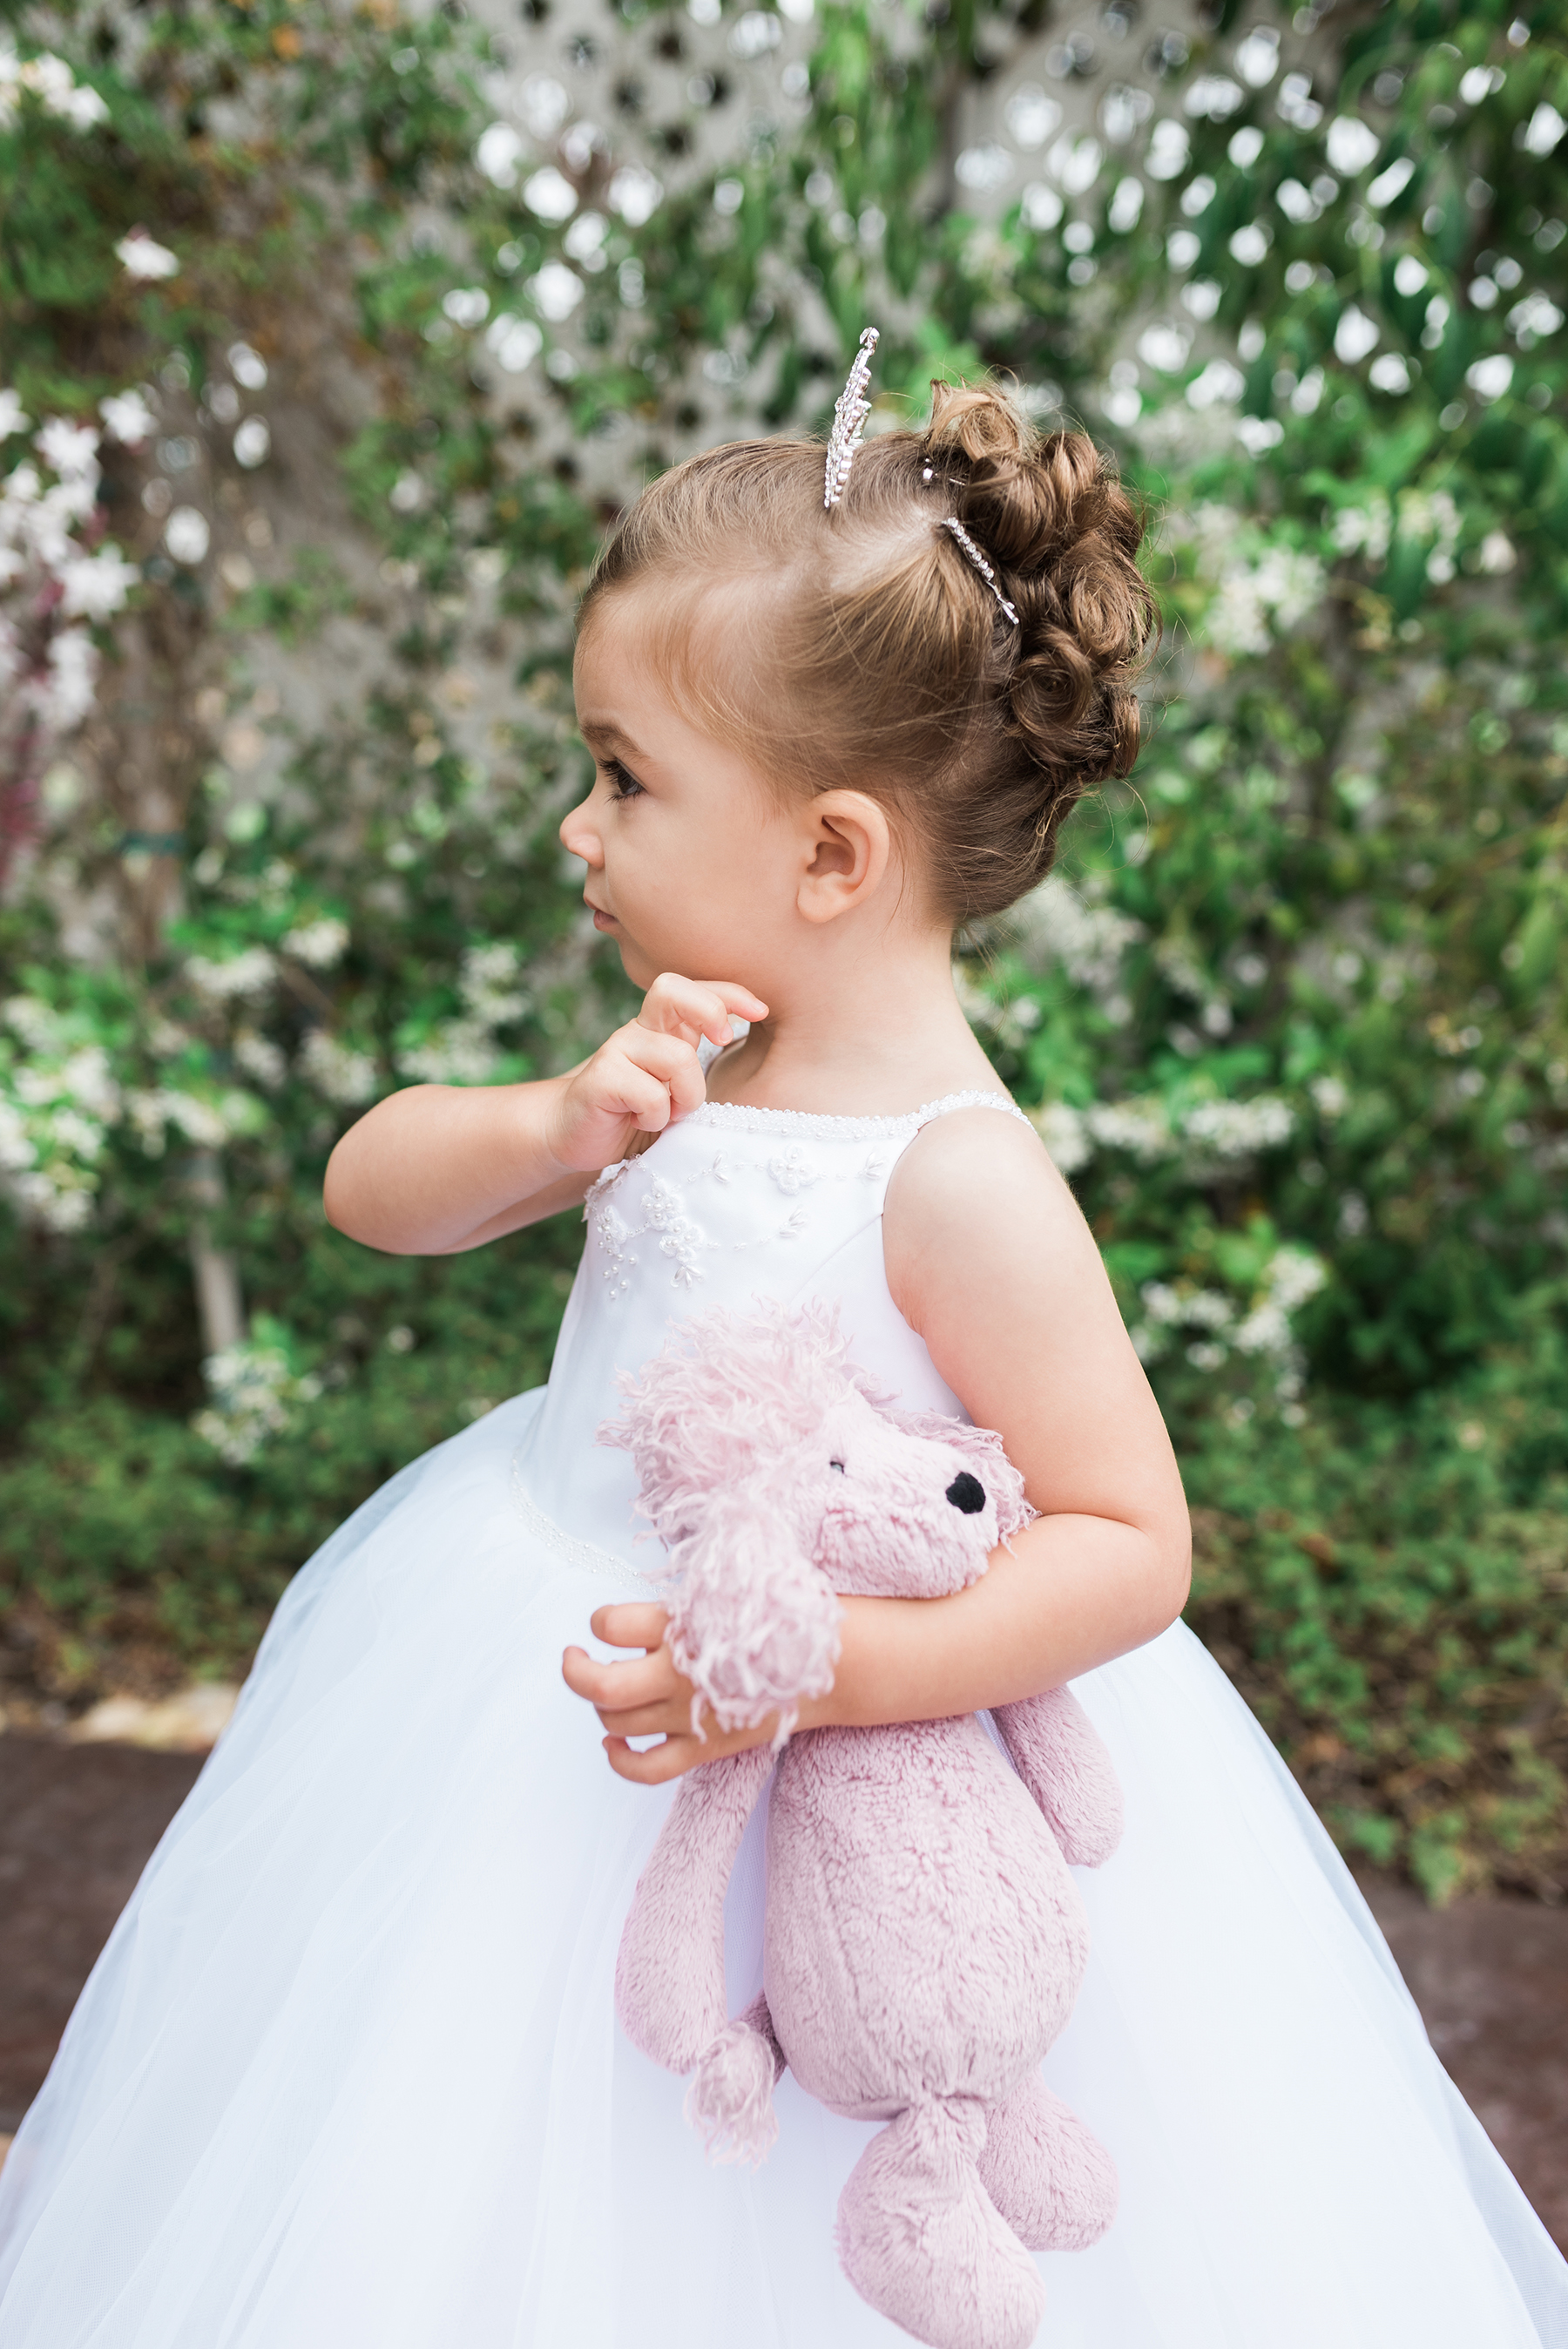 Flower Girl Hairstyle Pinned Curls with Tiara